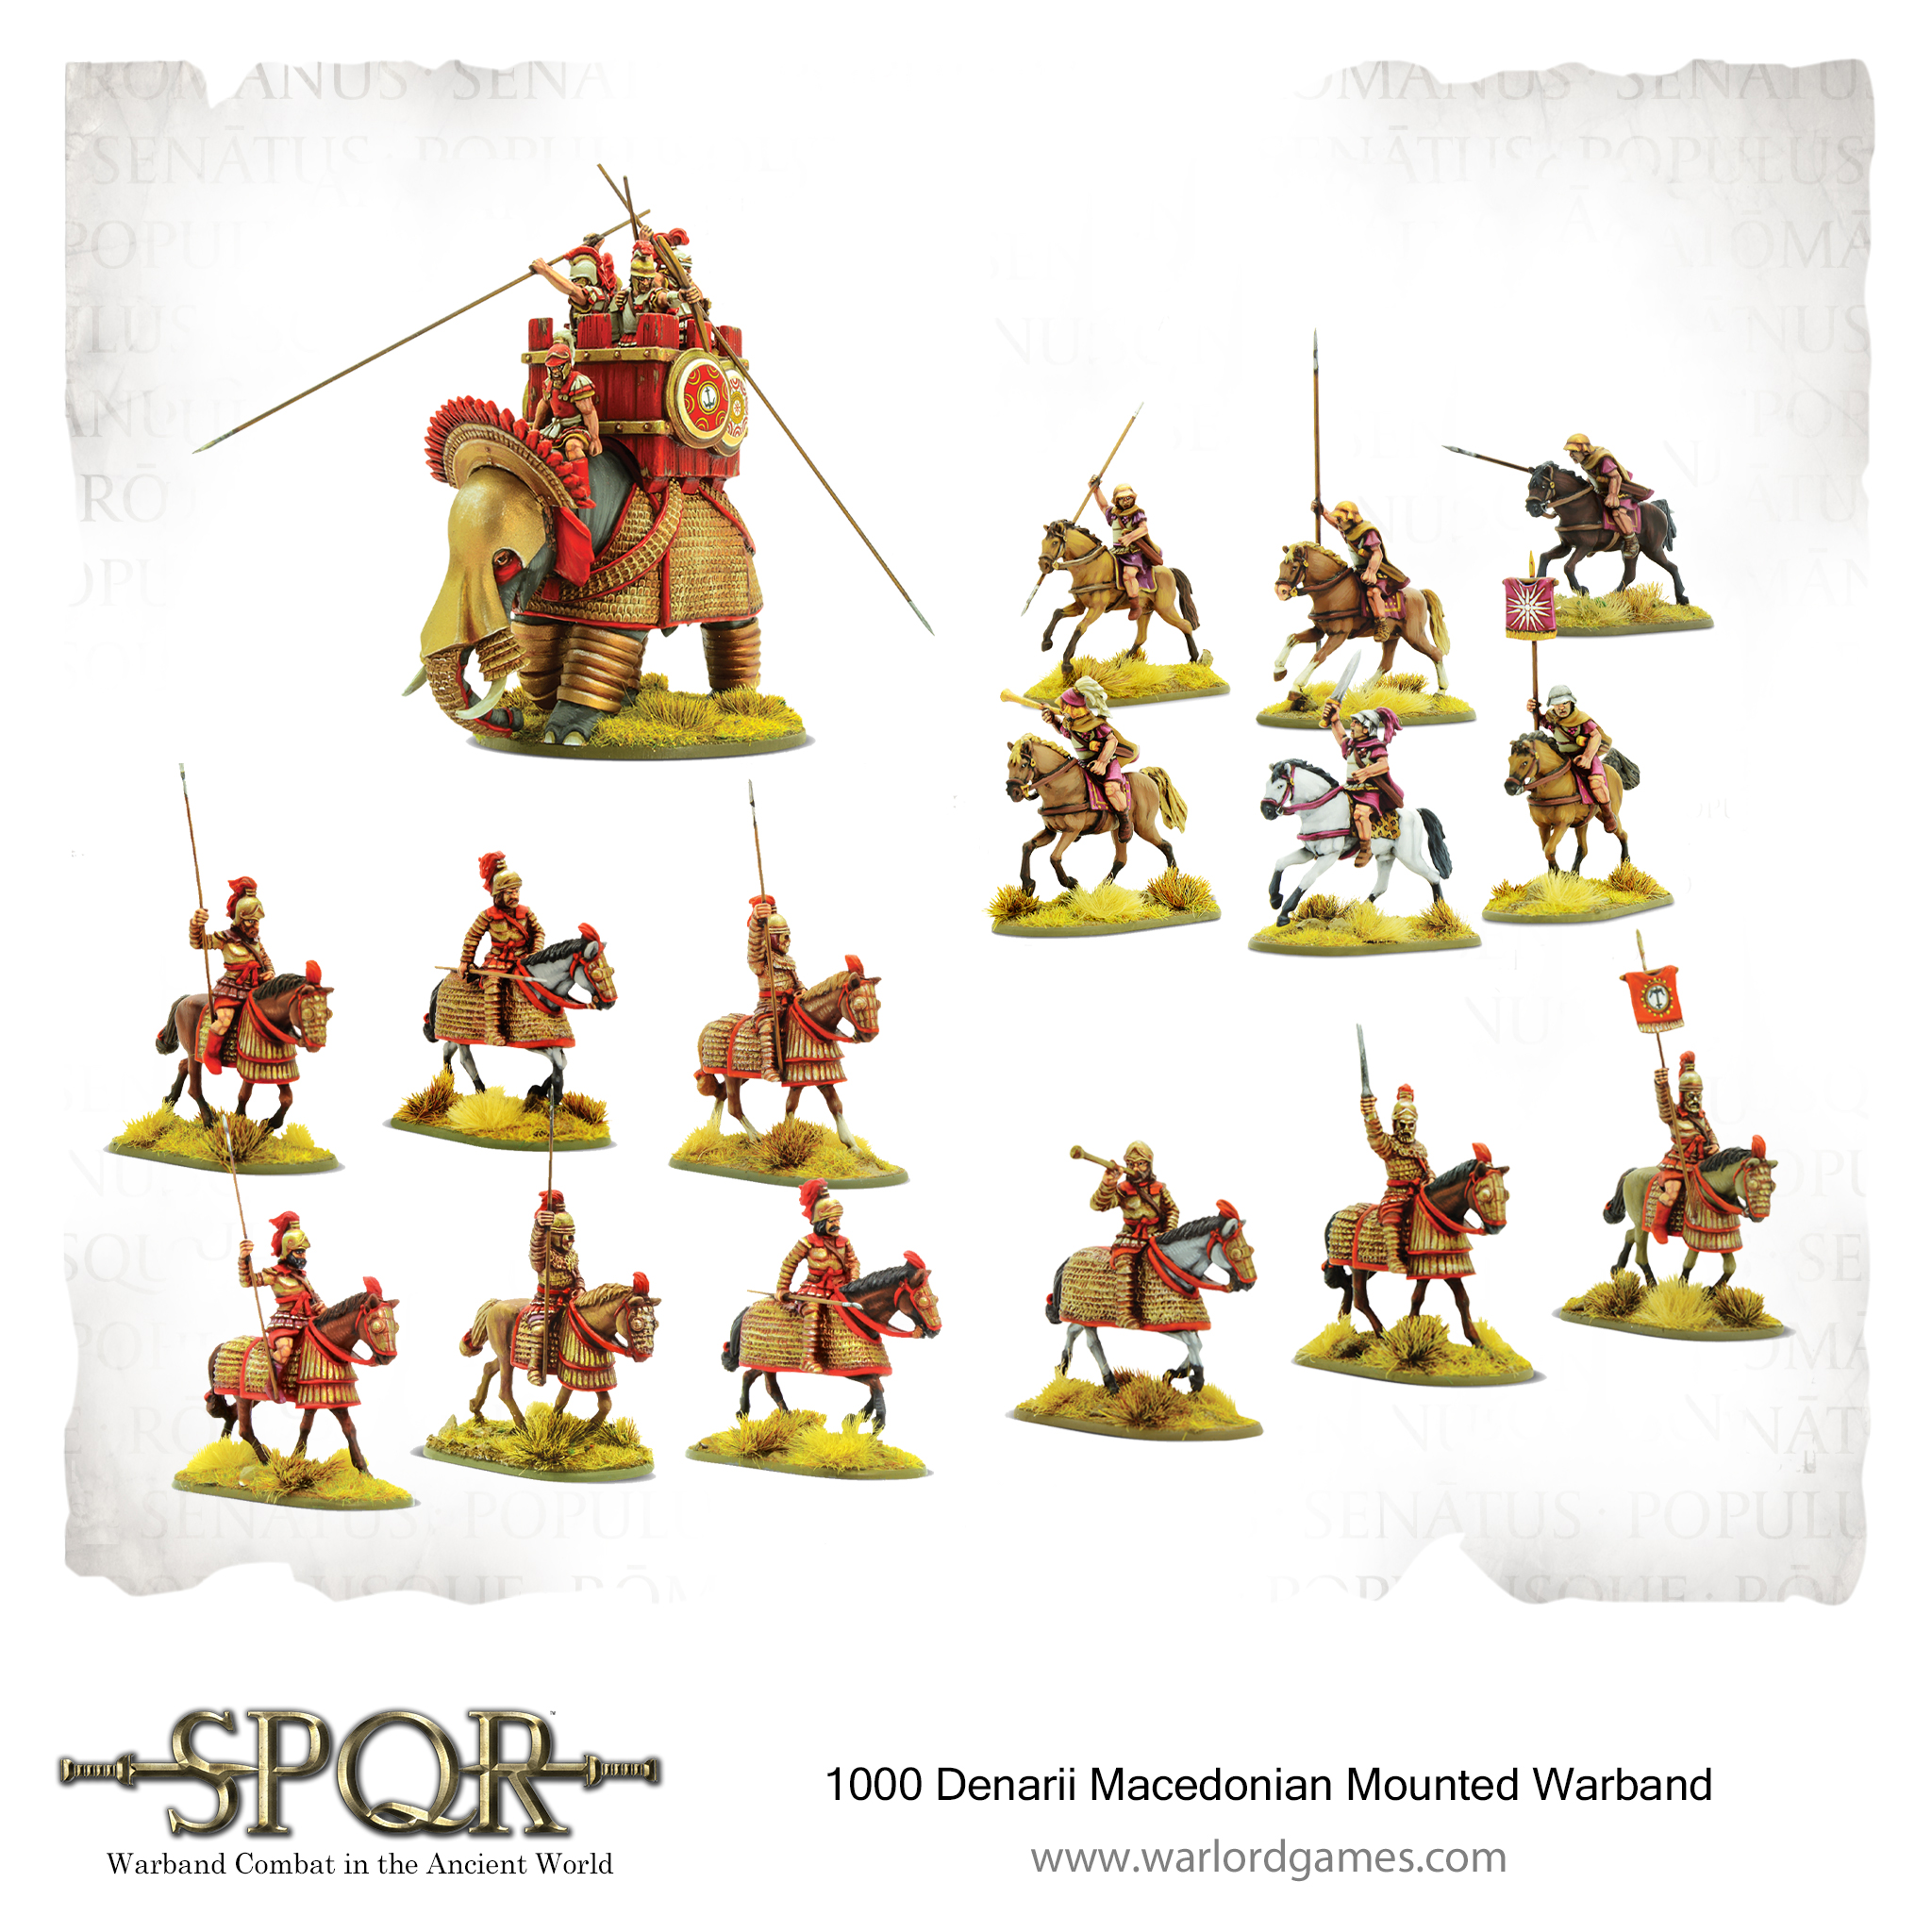 1000 Denarii Macedonian Mounted Warband